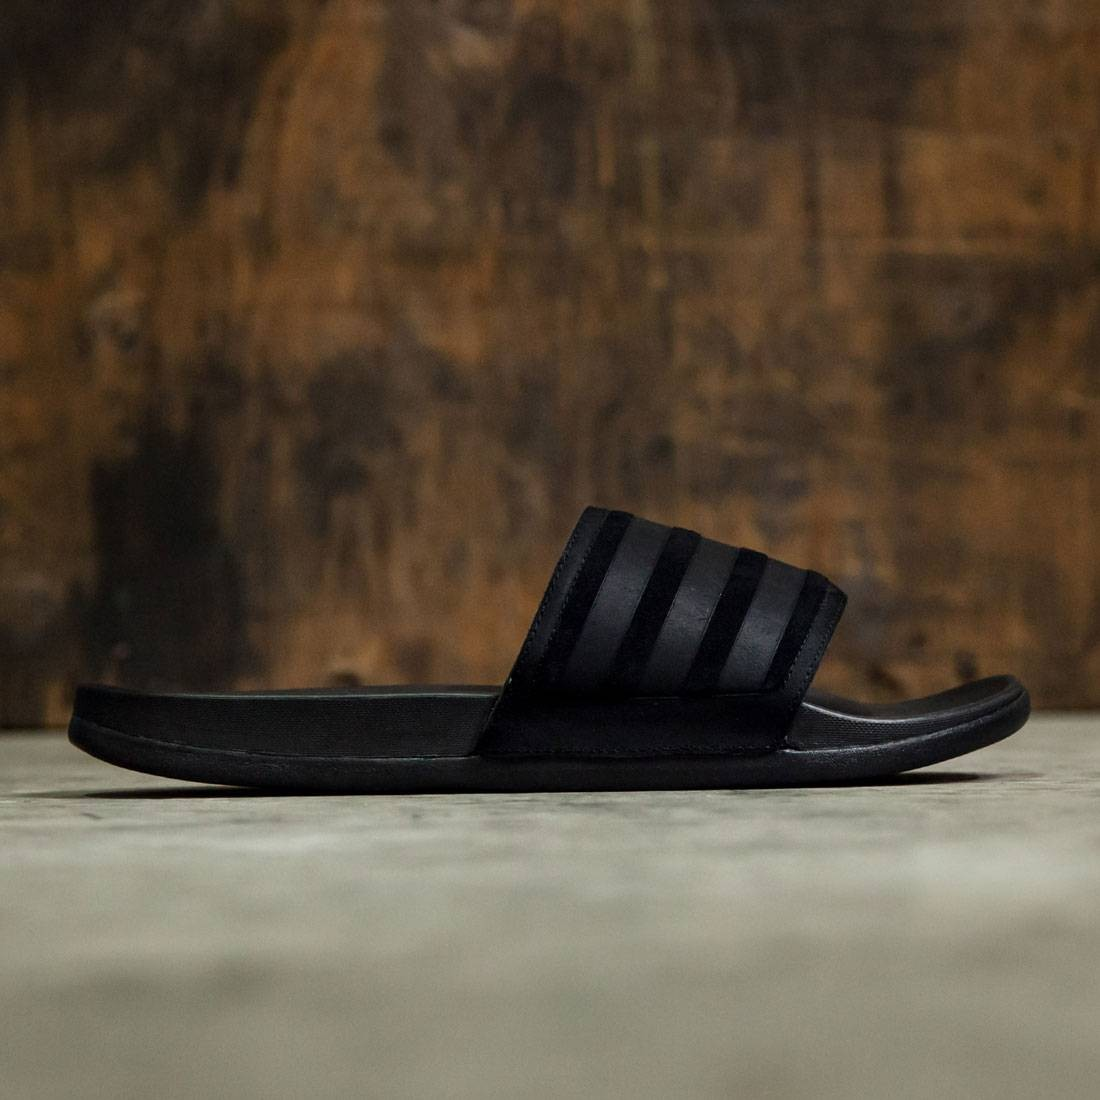 aac25522b4b28 Buy cheap adidas adilette mens   OFF70% Discounted